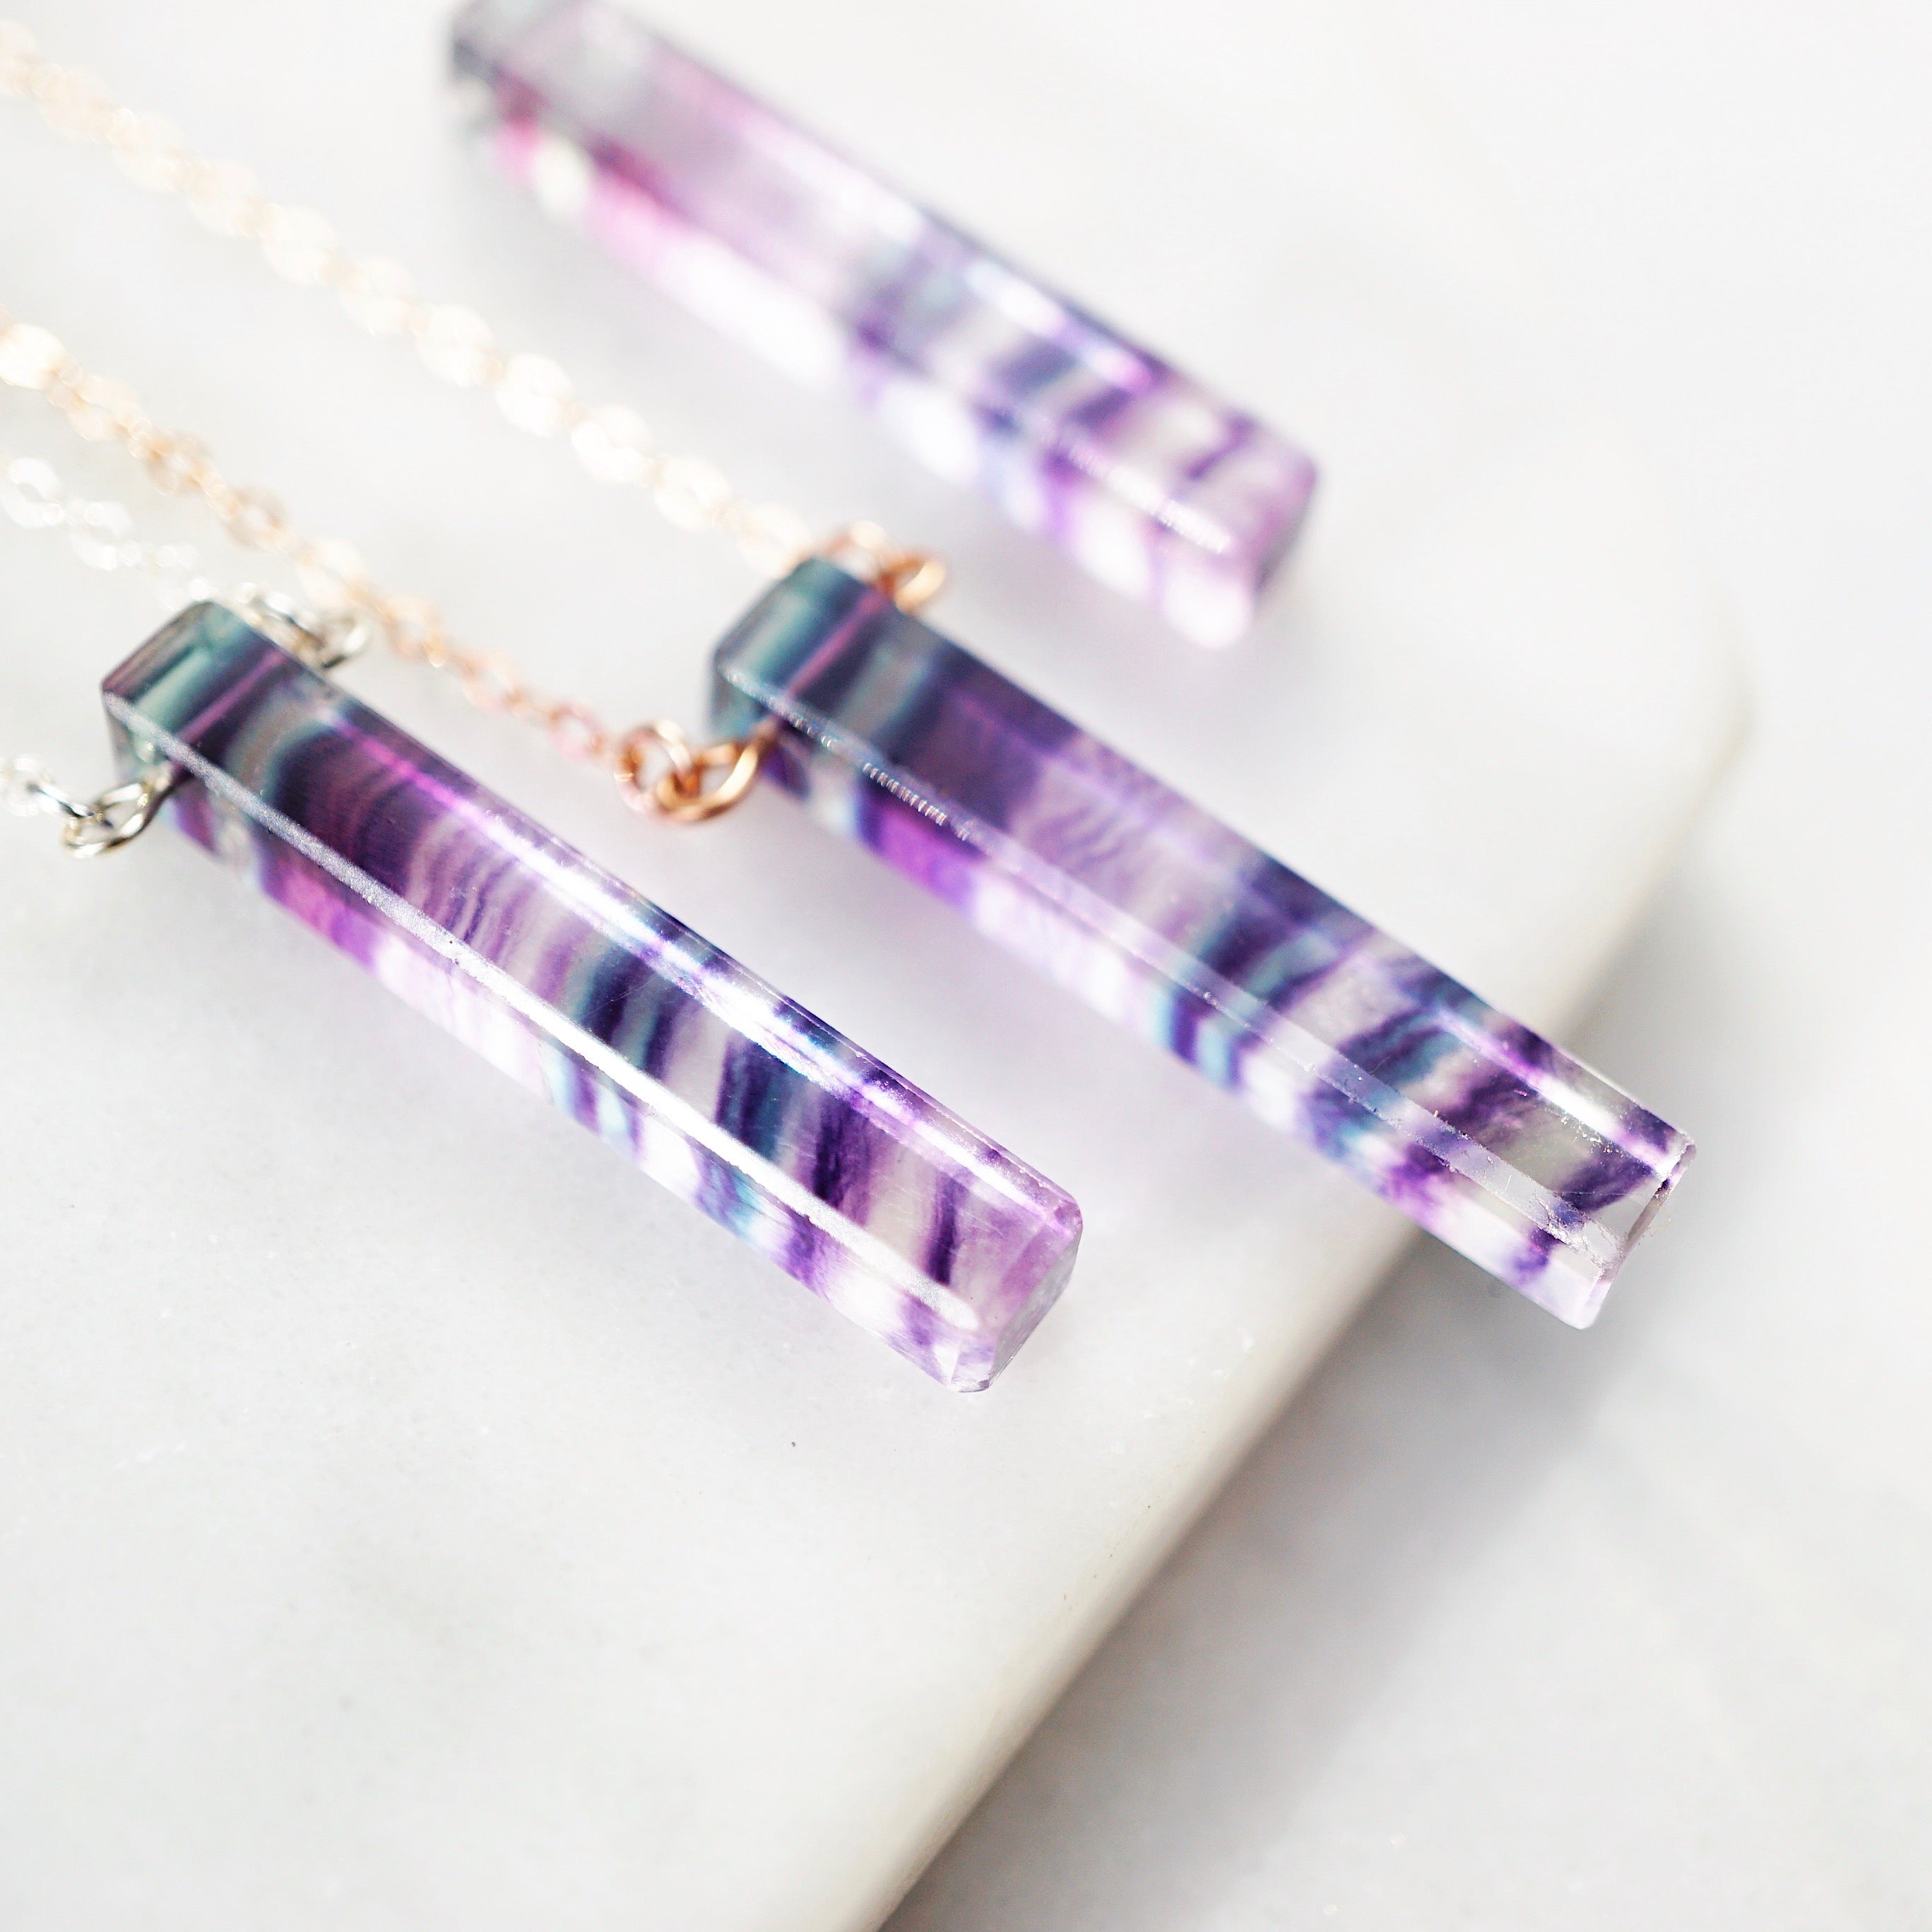 NEW Stone & Length! Rainbow Fluorite Bar Aromatherapy Necklace [G]+[S]+[RG] - Lava Essential Oils